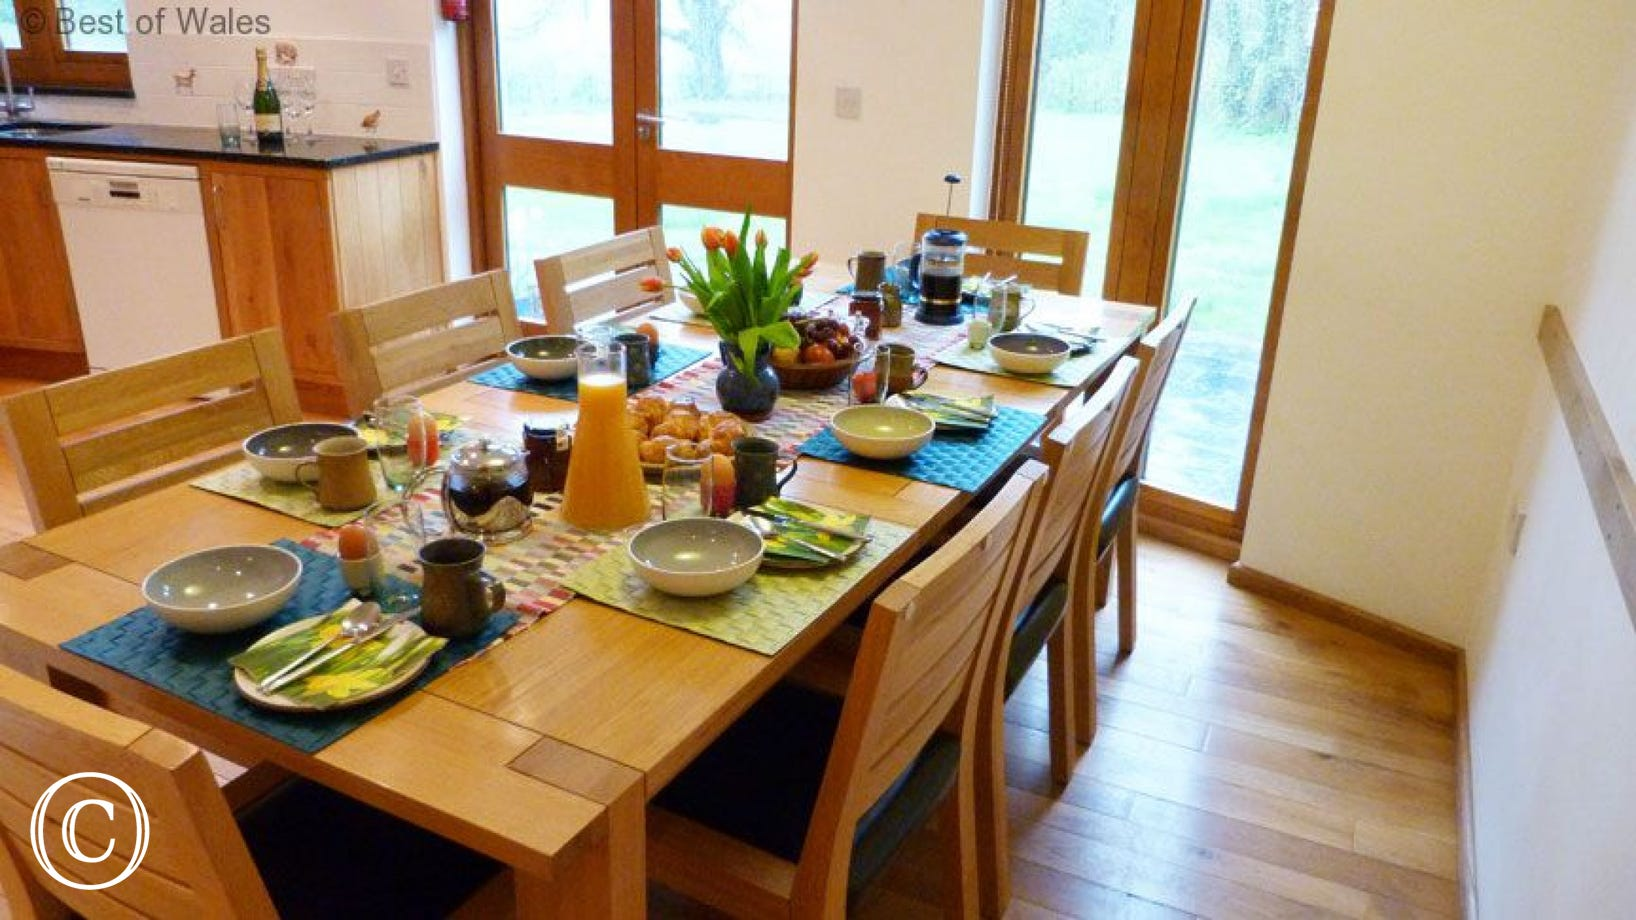 5 star self catering Brecon Beacons - breakfast table